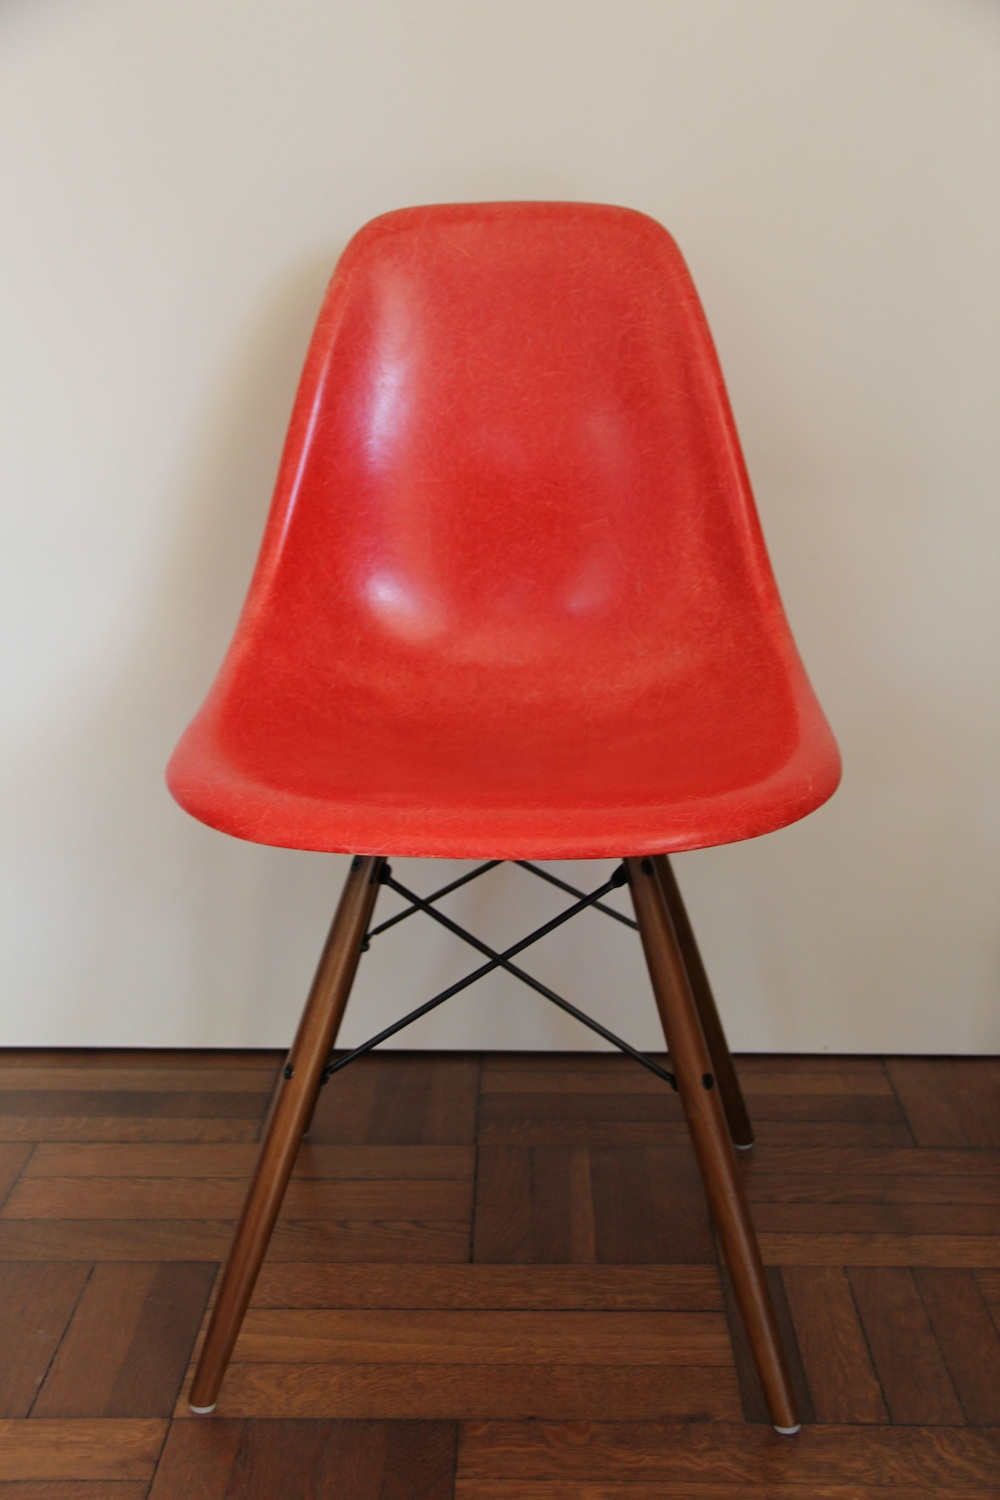 Vintage DSW by Eames for Herman Miller